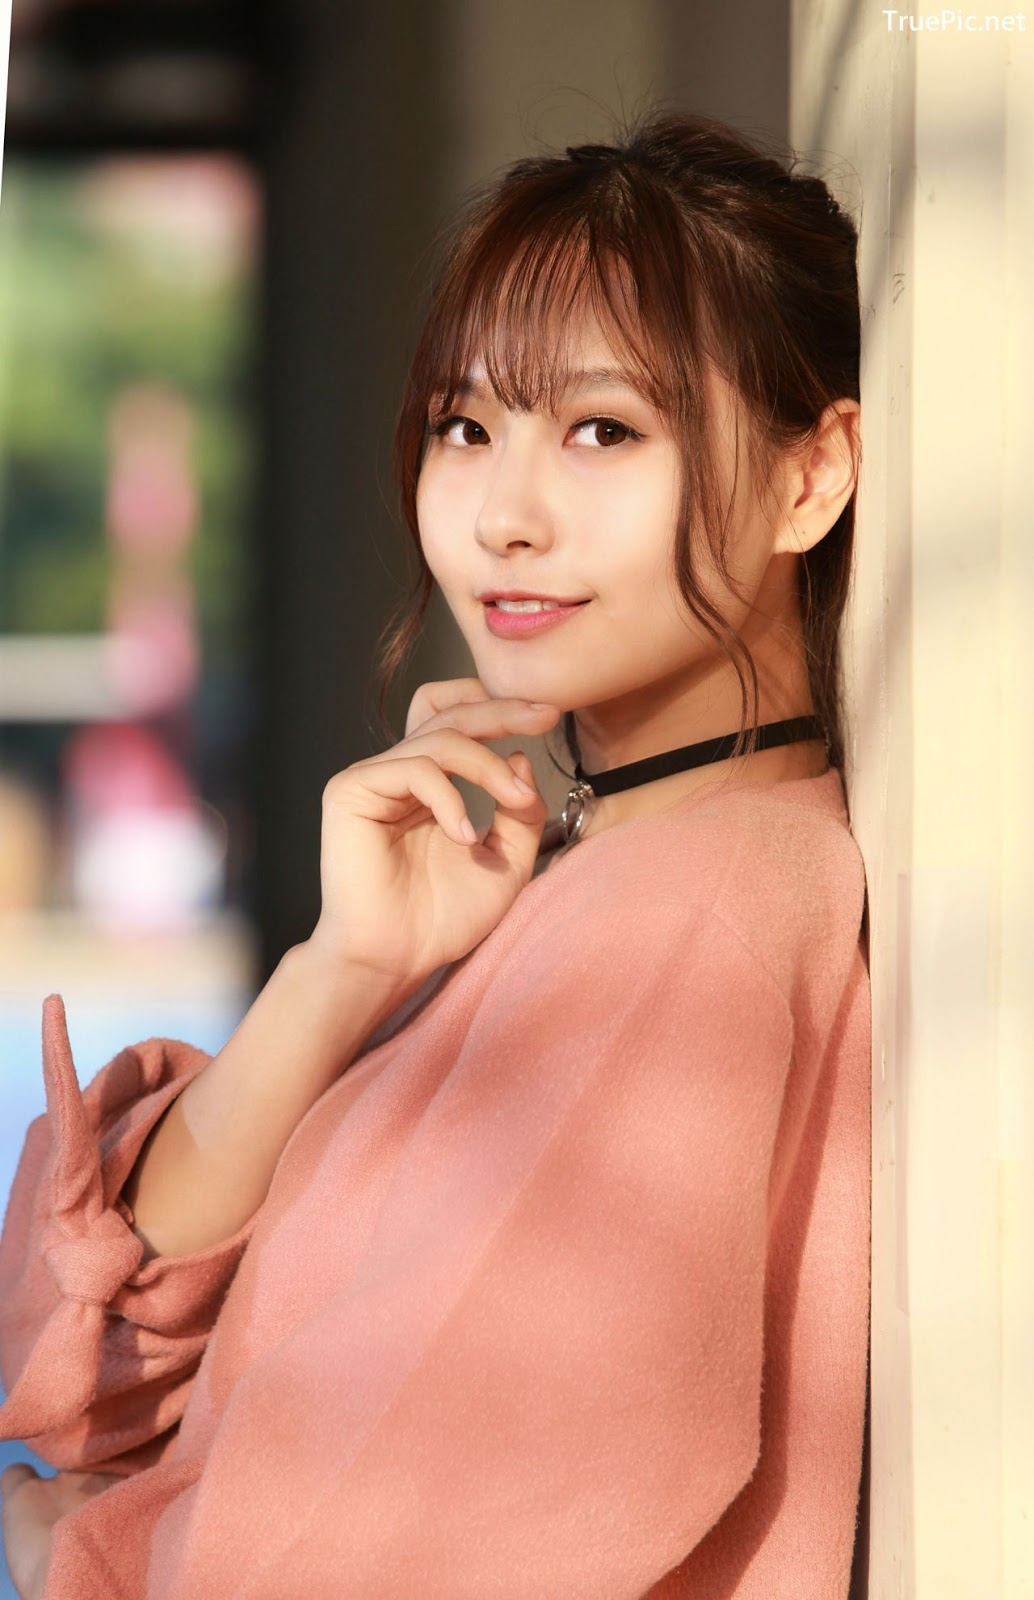 Image-Taiwanese-Model-郭思敏-Pure-And-Gorgeous-Girl-In-Pink-Sweater-Dress-TruePic.net- Picture-2